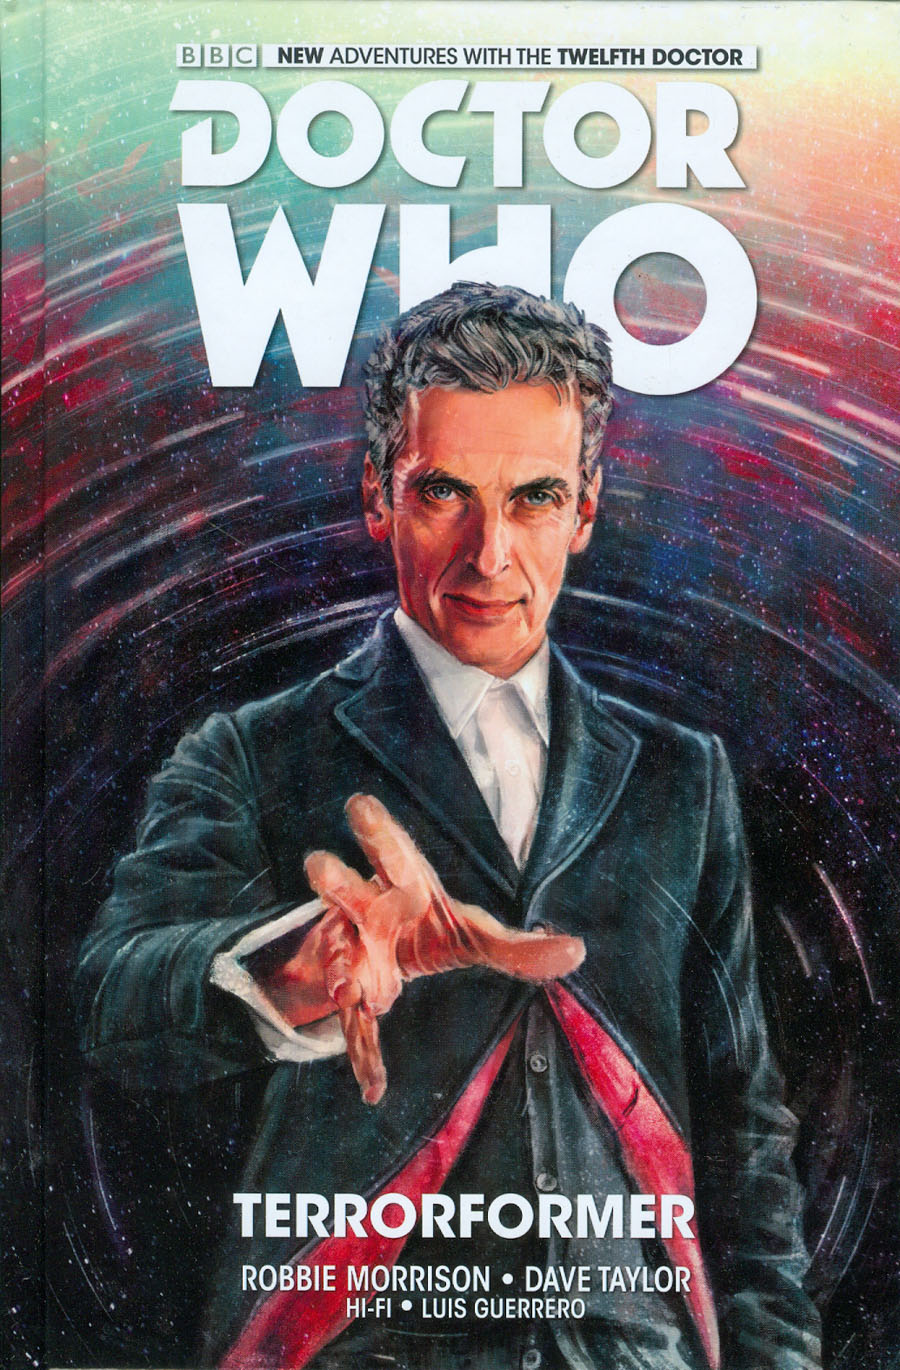 Doctor Who 12th Doctor Vol 1 Terrorformer HC